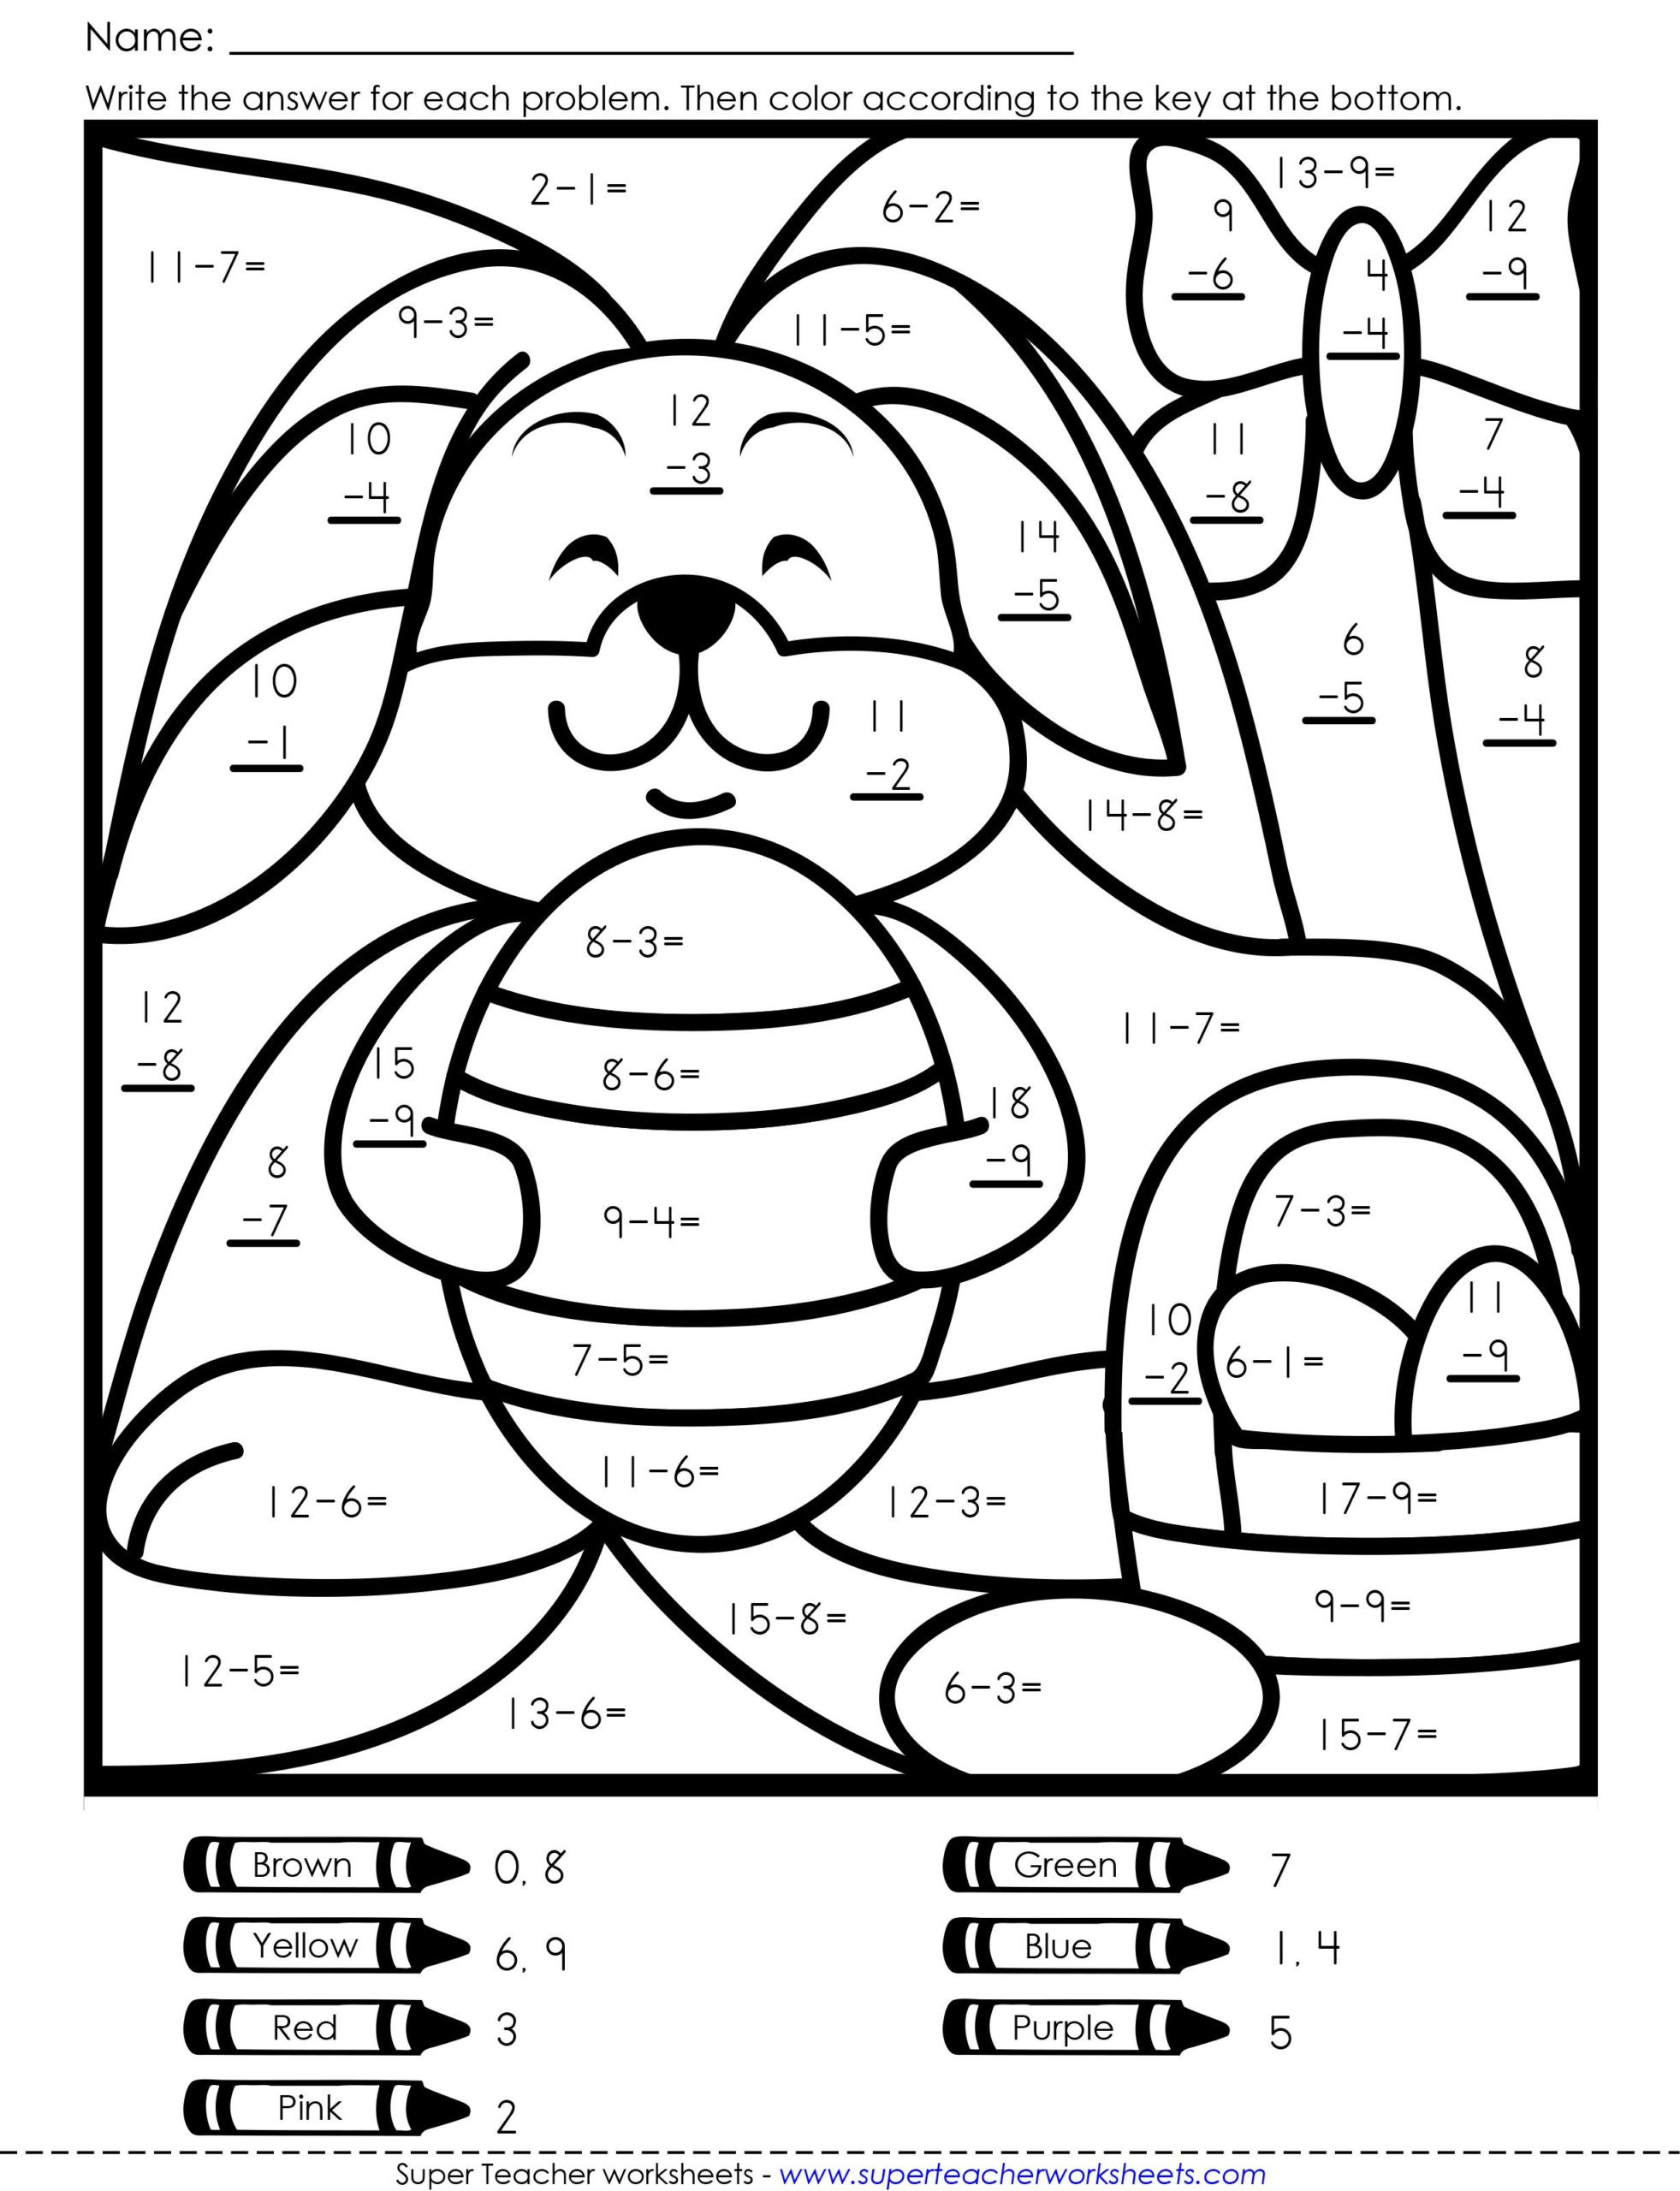 Math Coloring Worksheets 7th Grade Coloring Book Easter Coloring Pages Math Free Worksheets